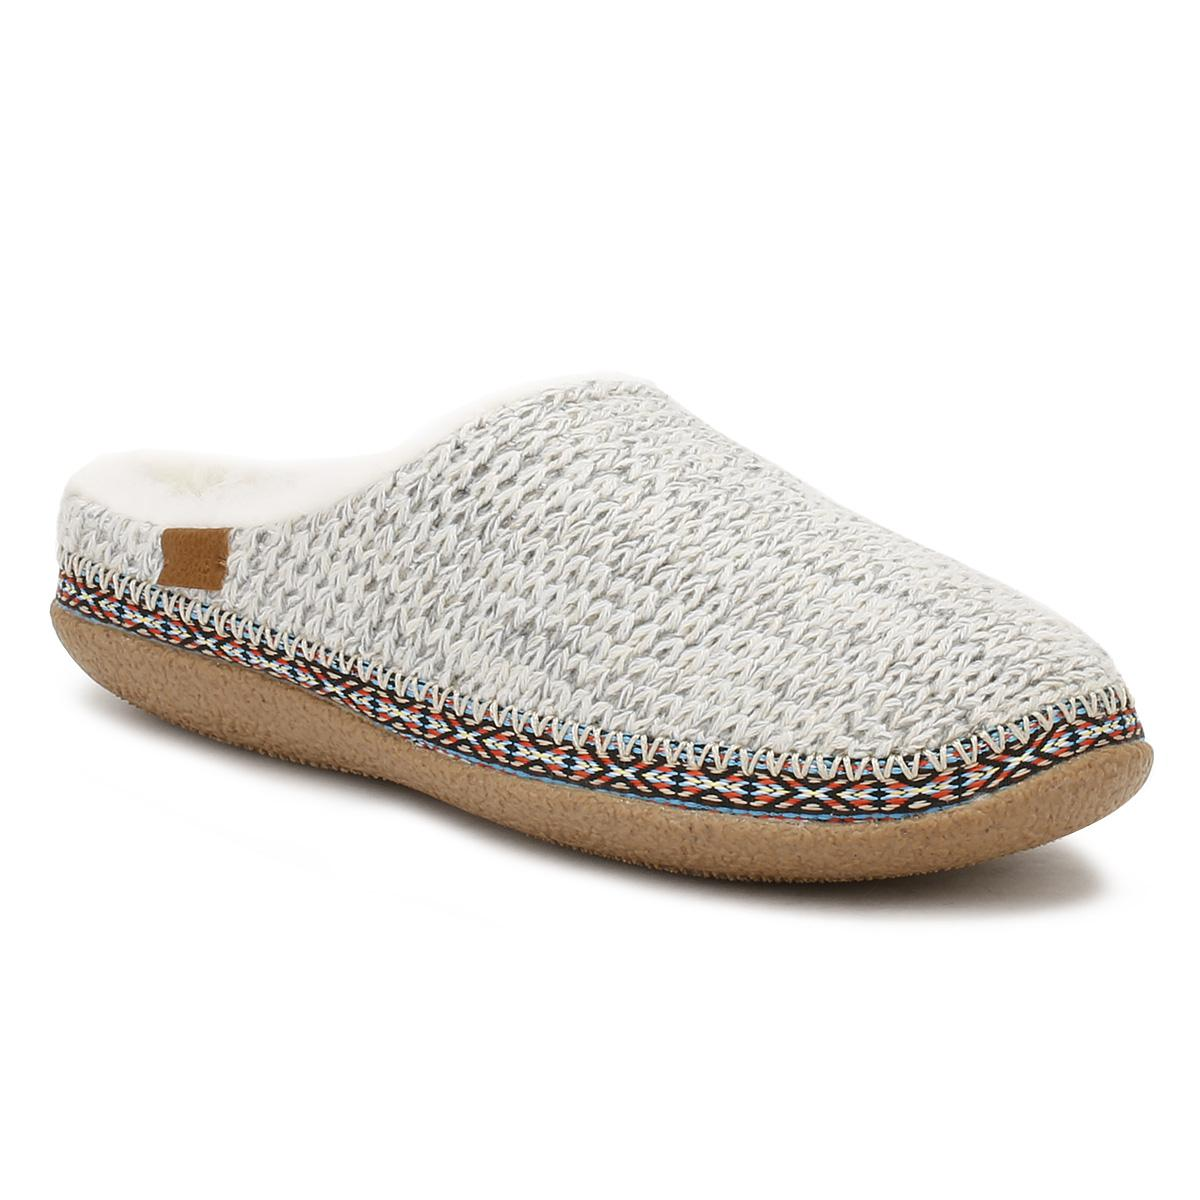 d5798b62938 Lyst - TOMS Ivy Slipper in Natural - Save 23%